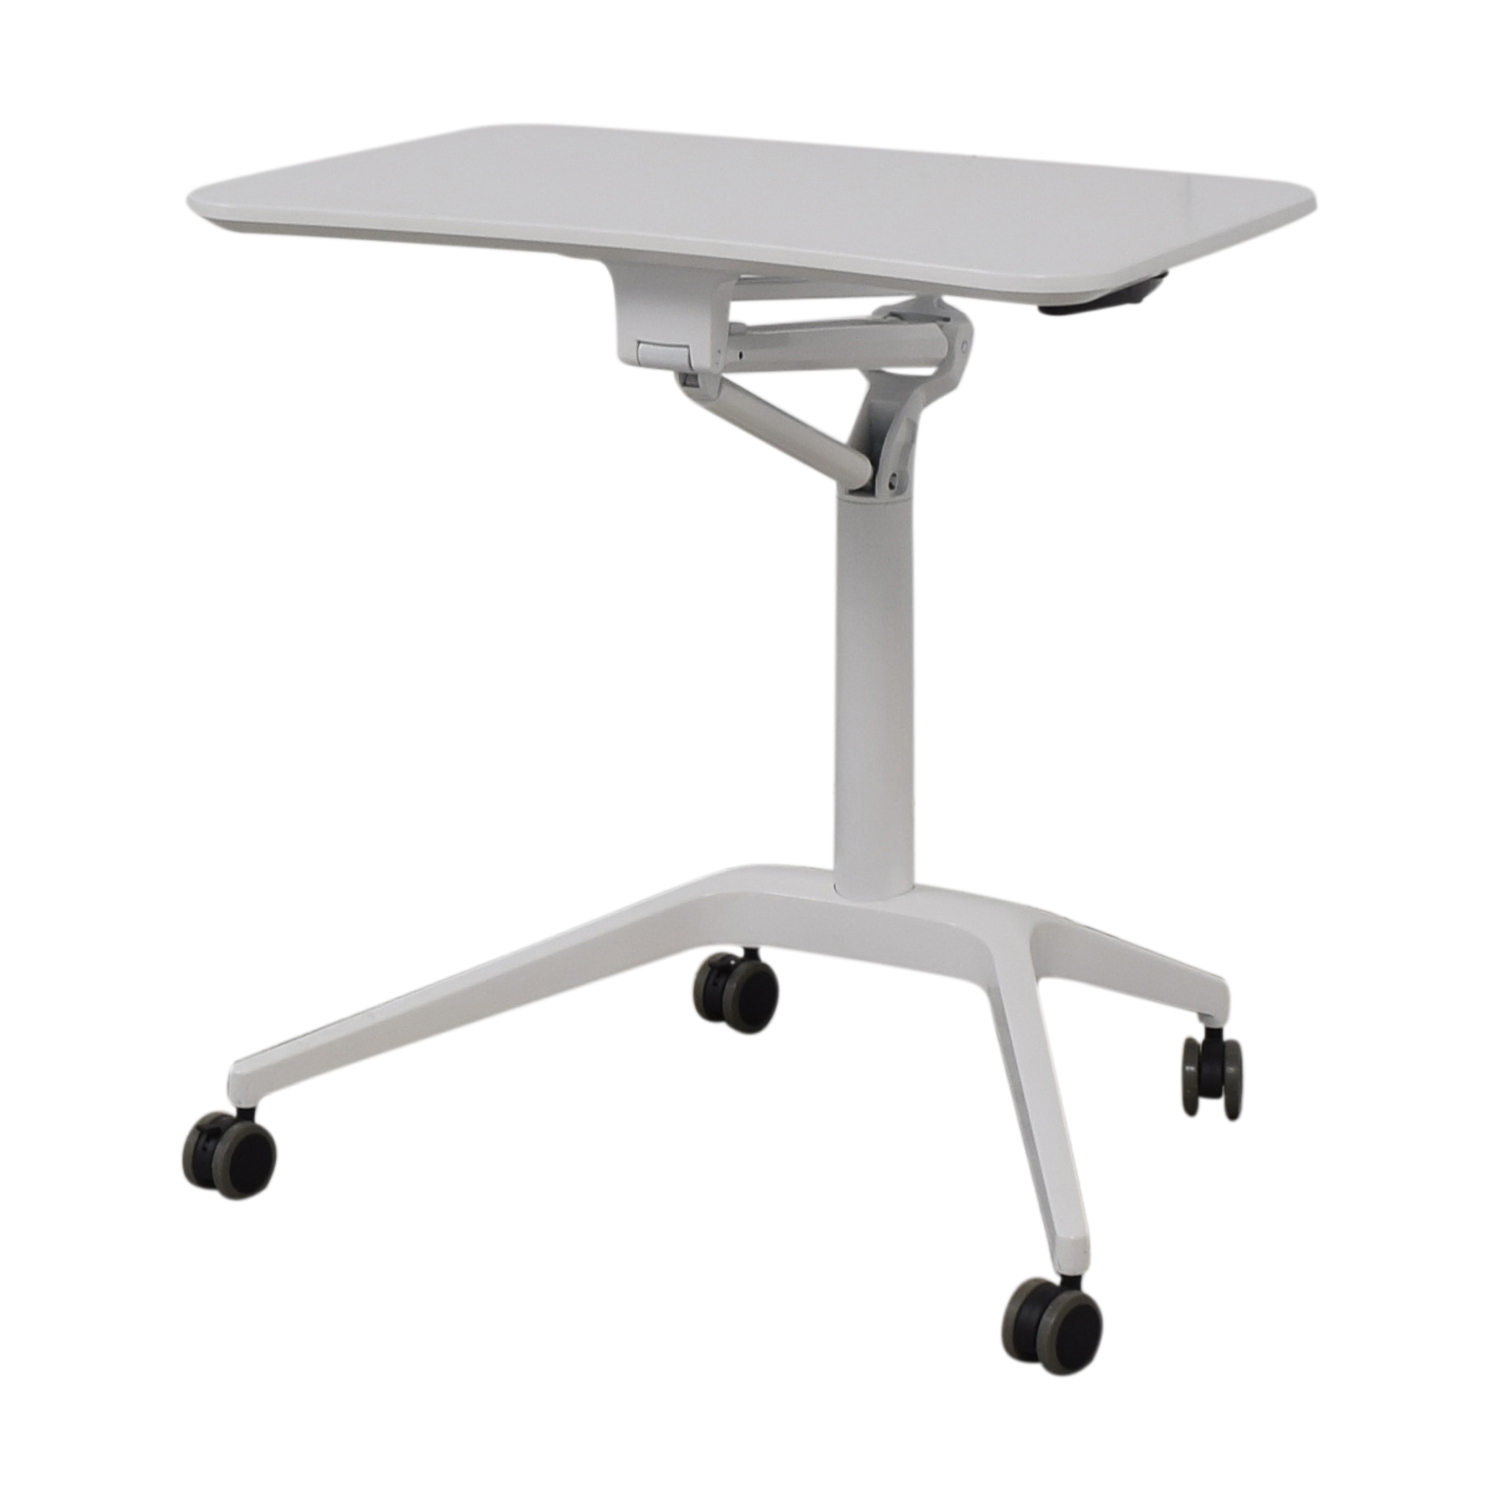 shop Container Store Container Store White Adjustable Desk online